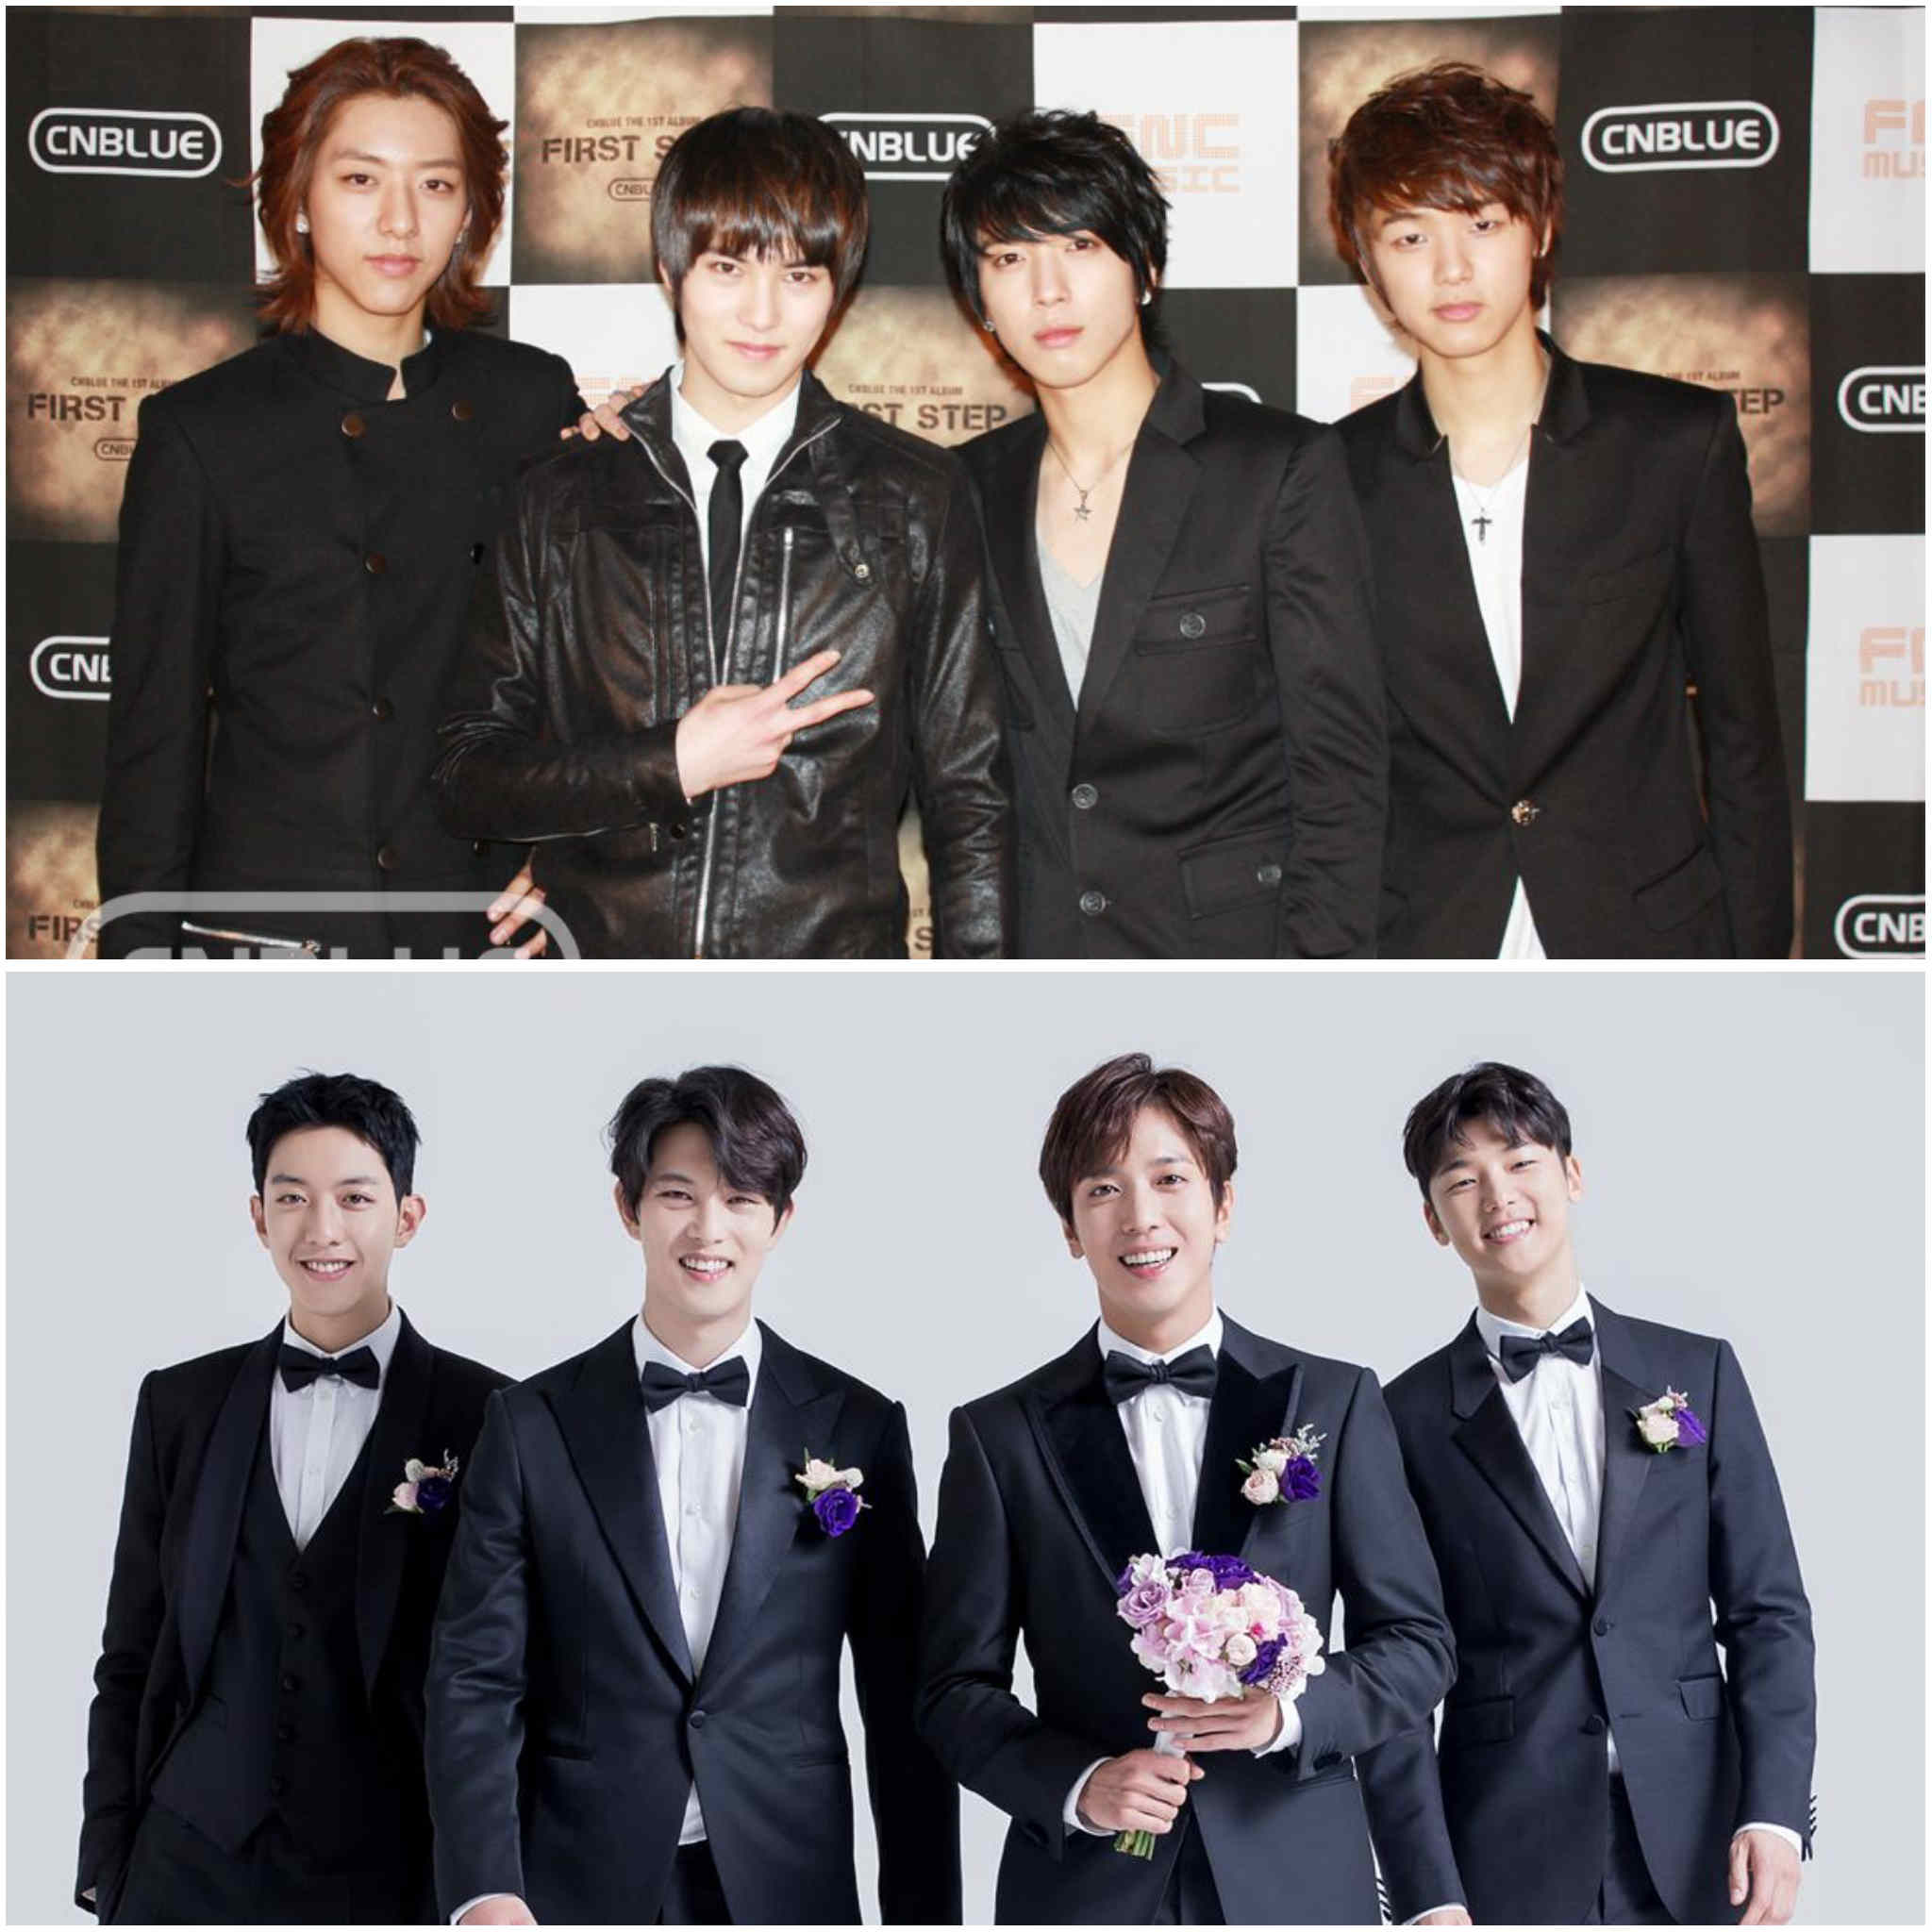 2nd generation K-pop groups - CNBLUE